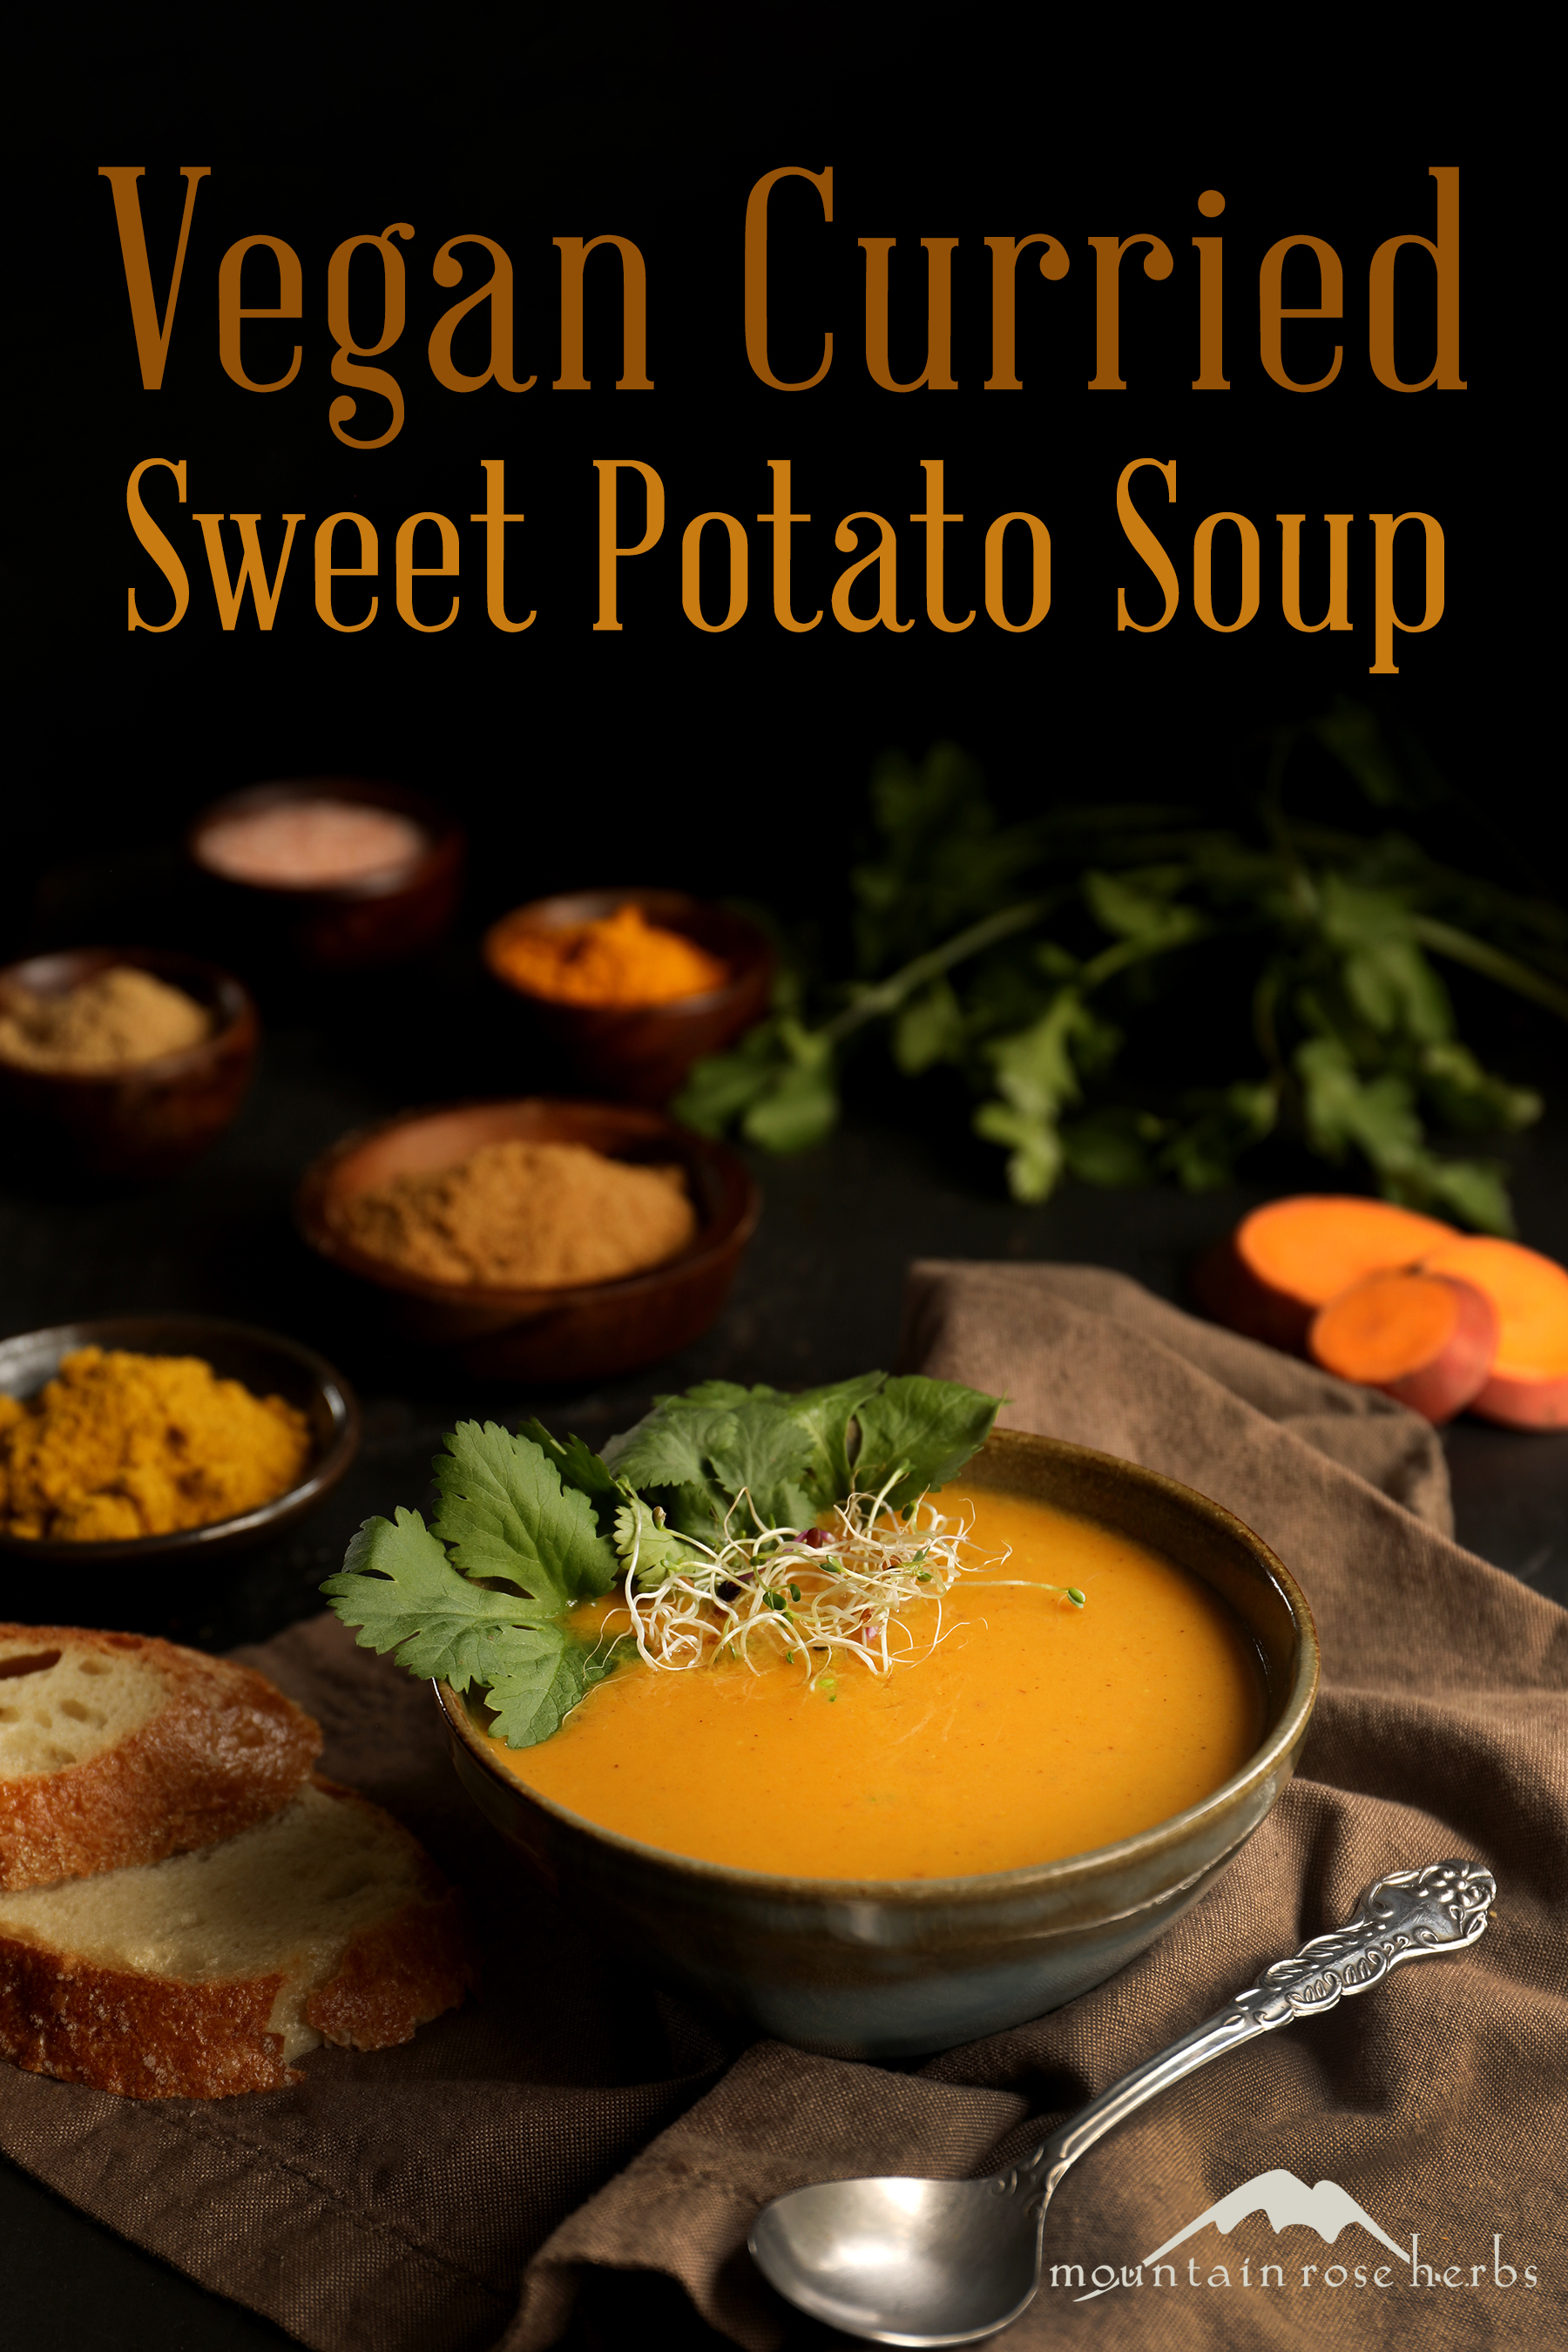 Sweet potato soup with coconut curry is delicious and warming with Indian spices like cinnamon and curry powder. Soup is garnished with fresh cilantro, sprouts, and crispy bread.